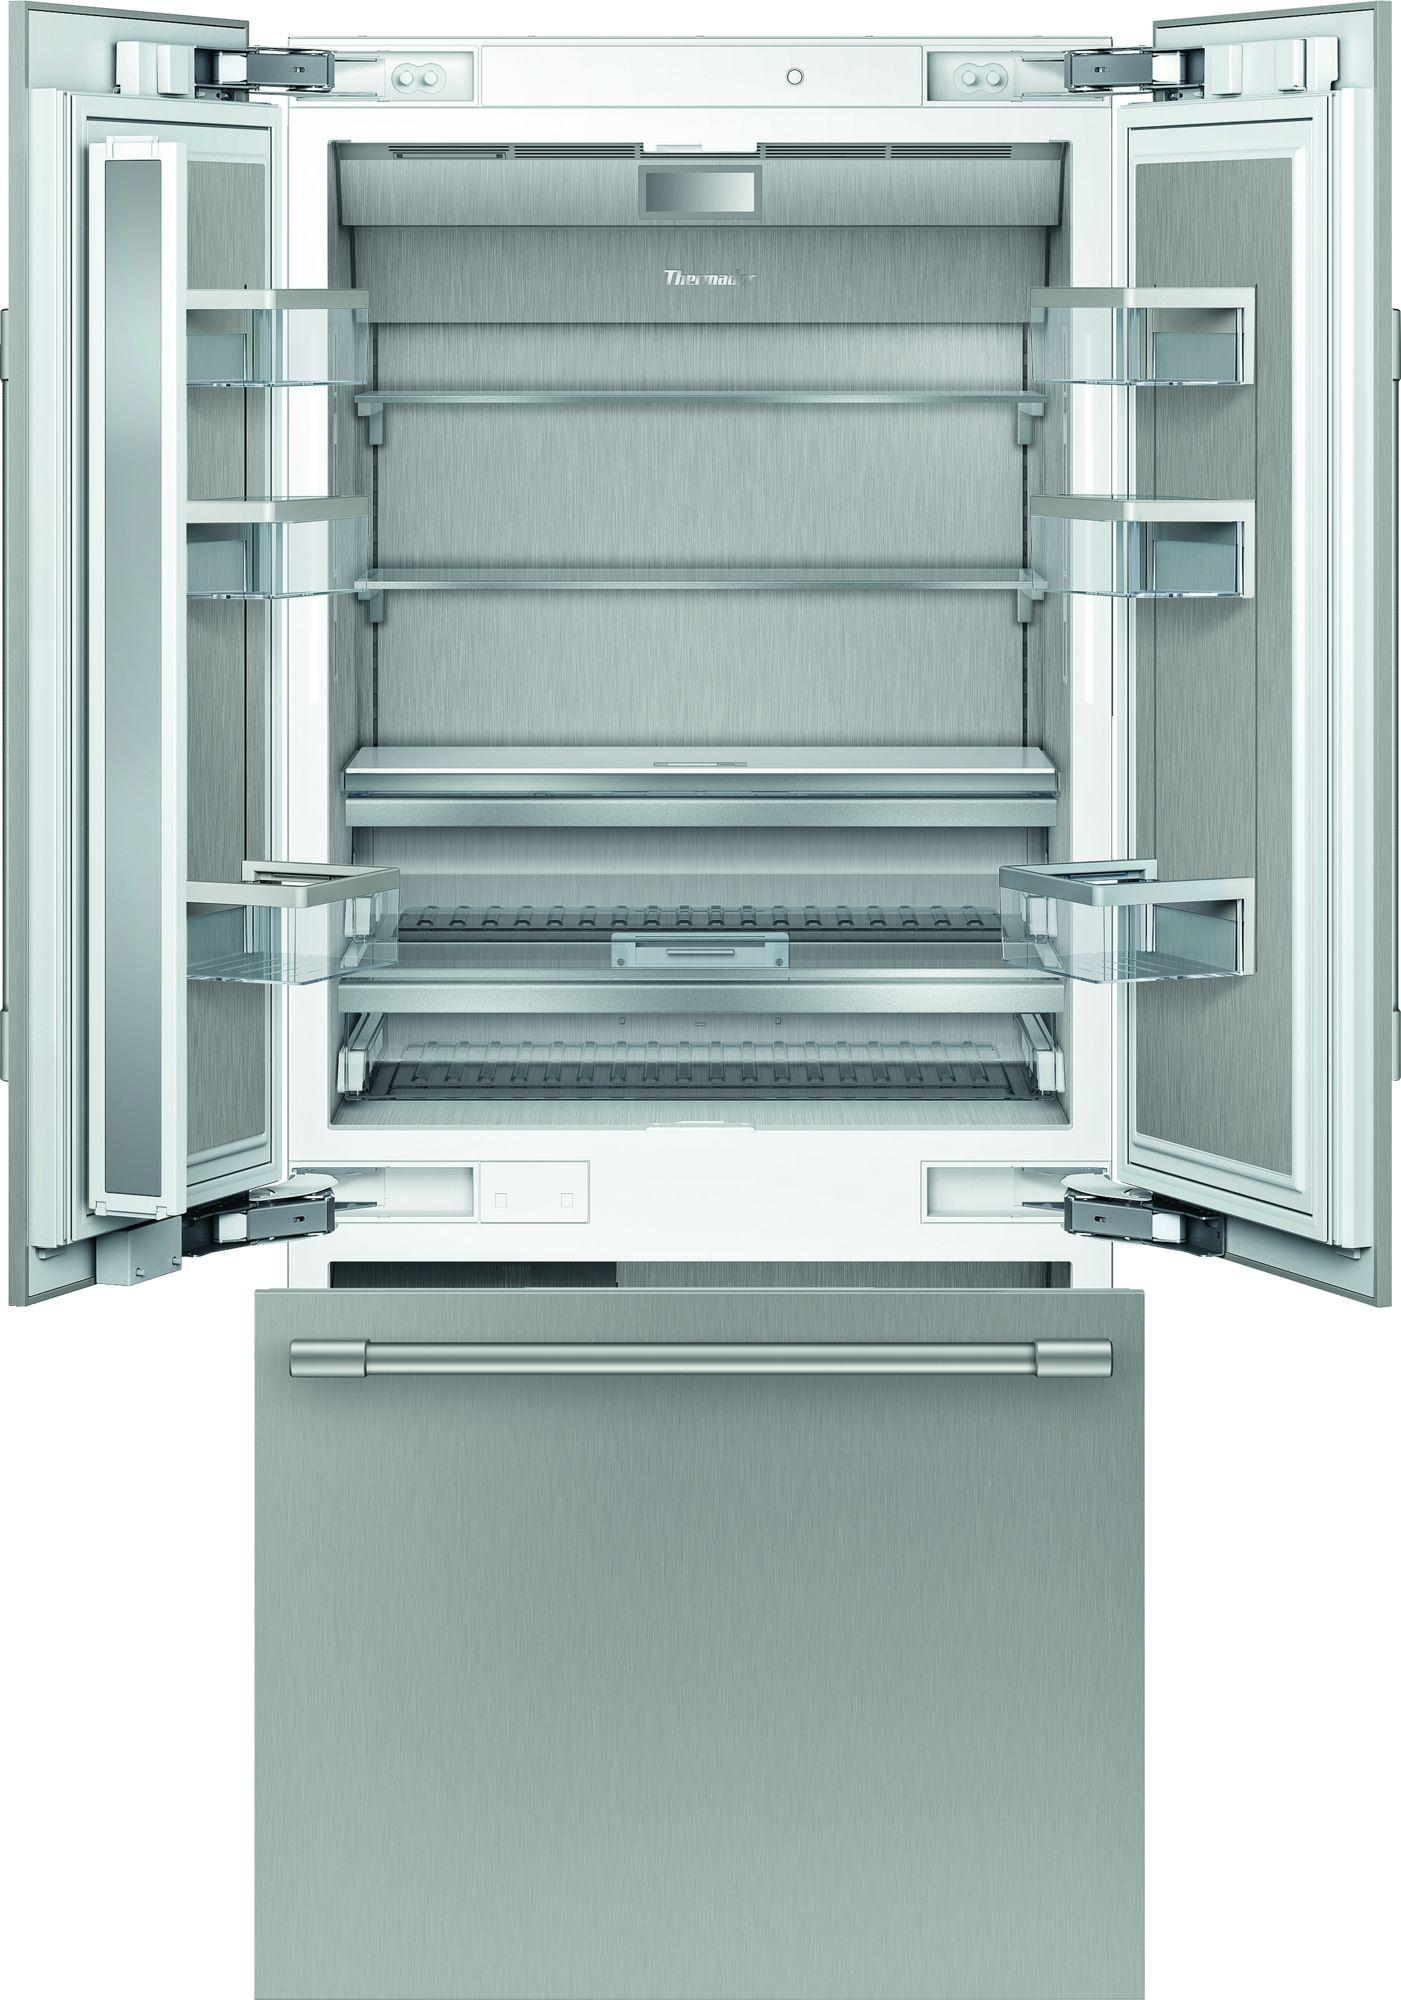 ThermadorBuilt-In French Door Bottom Freezer 36'' Professional Soft Close Flat Hinge T36bt925ns